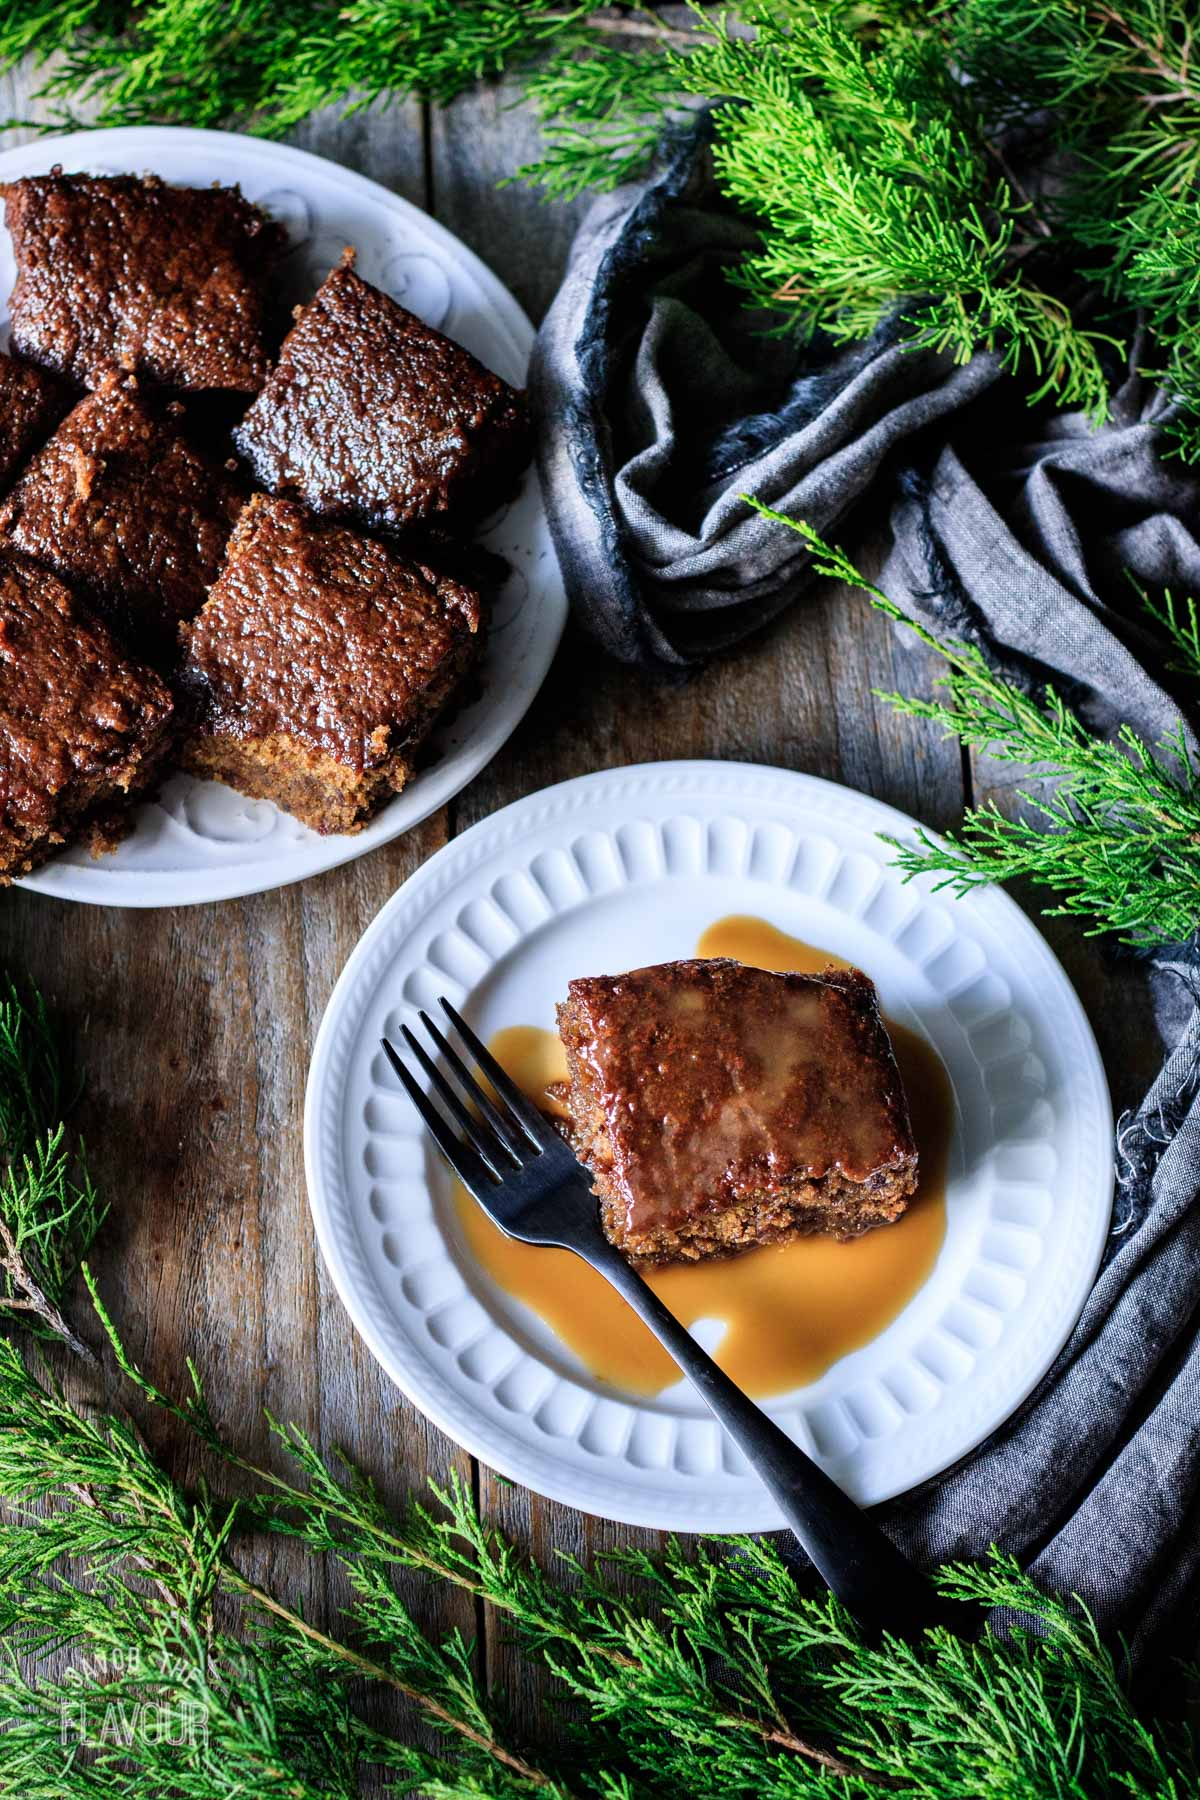 slices of vegan sticky toffee pudding on plates